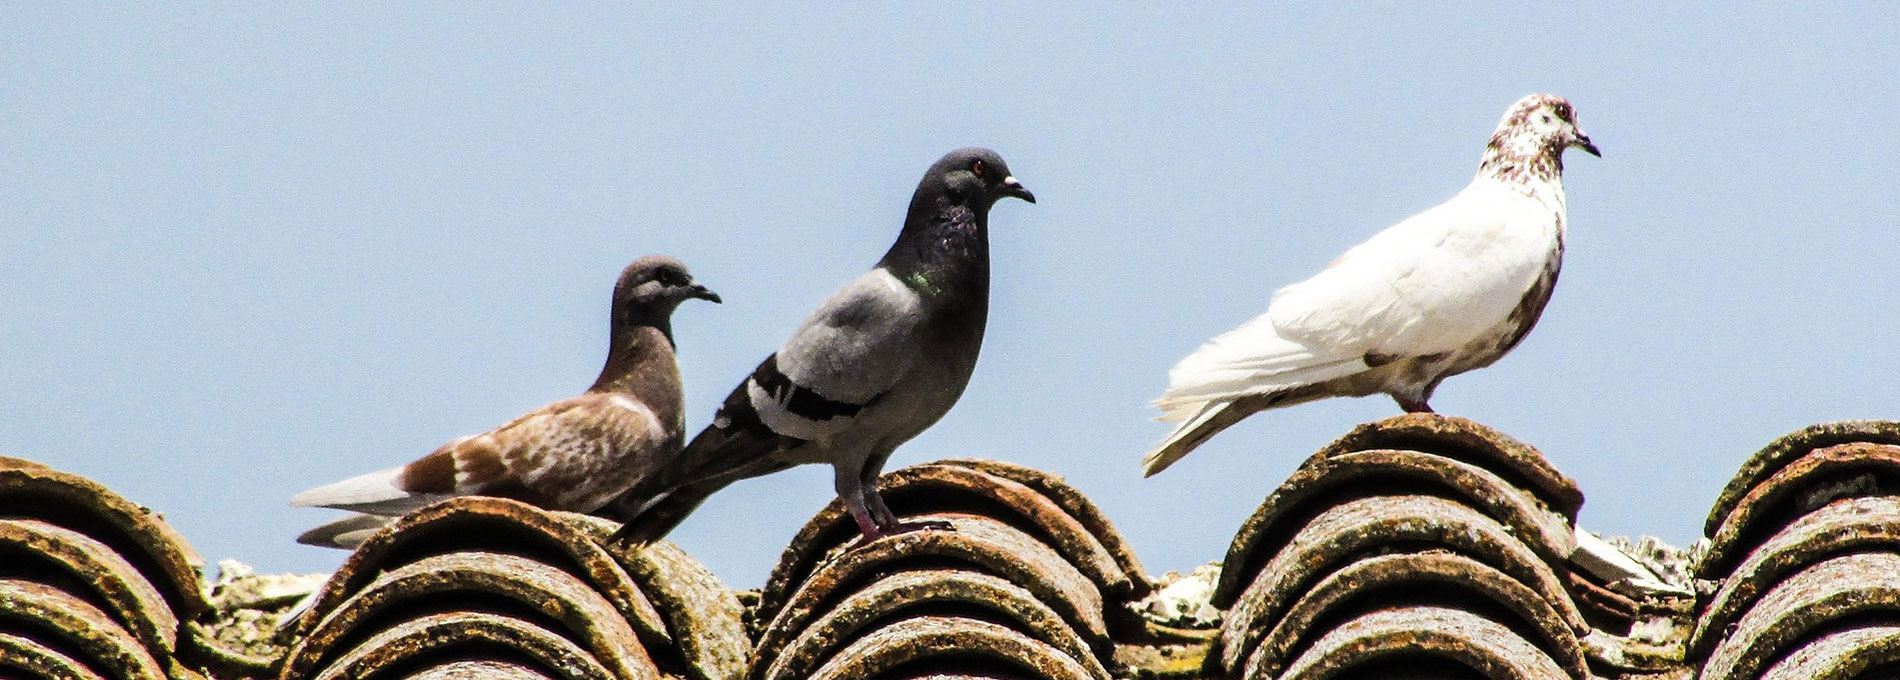 Pigeons eviction